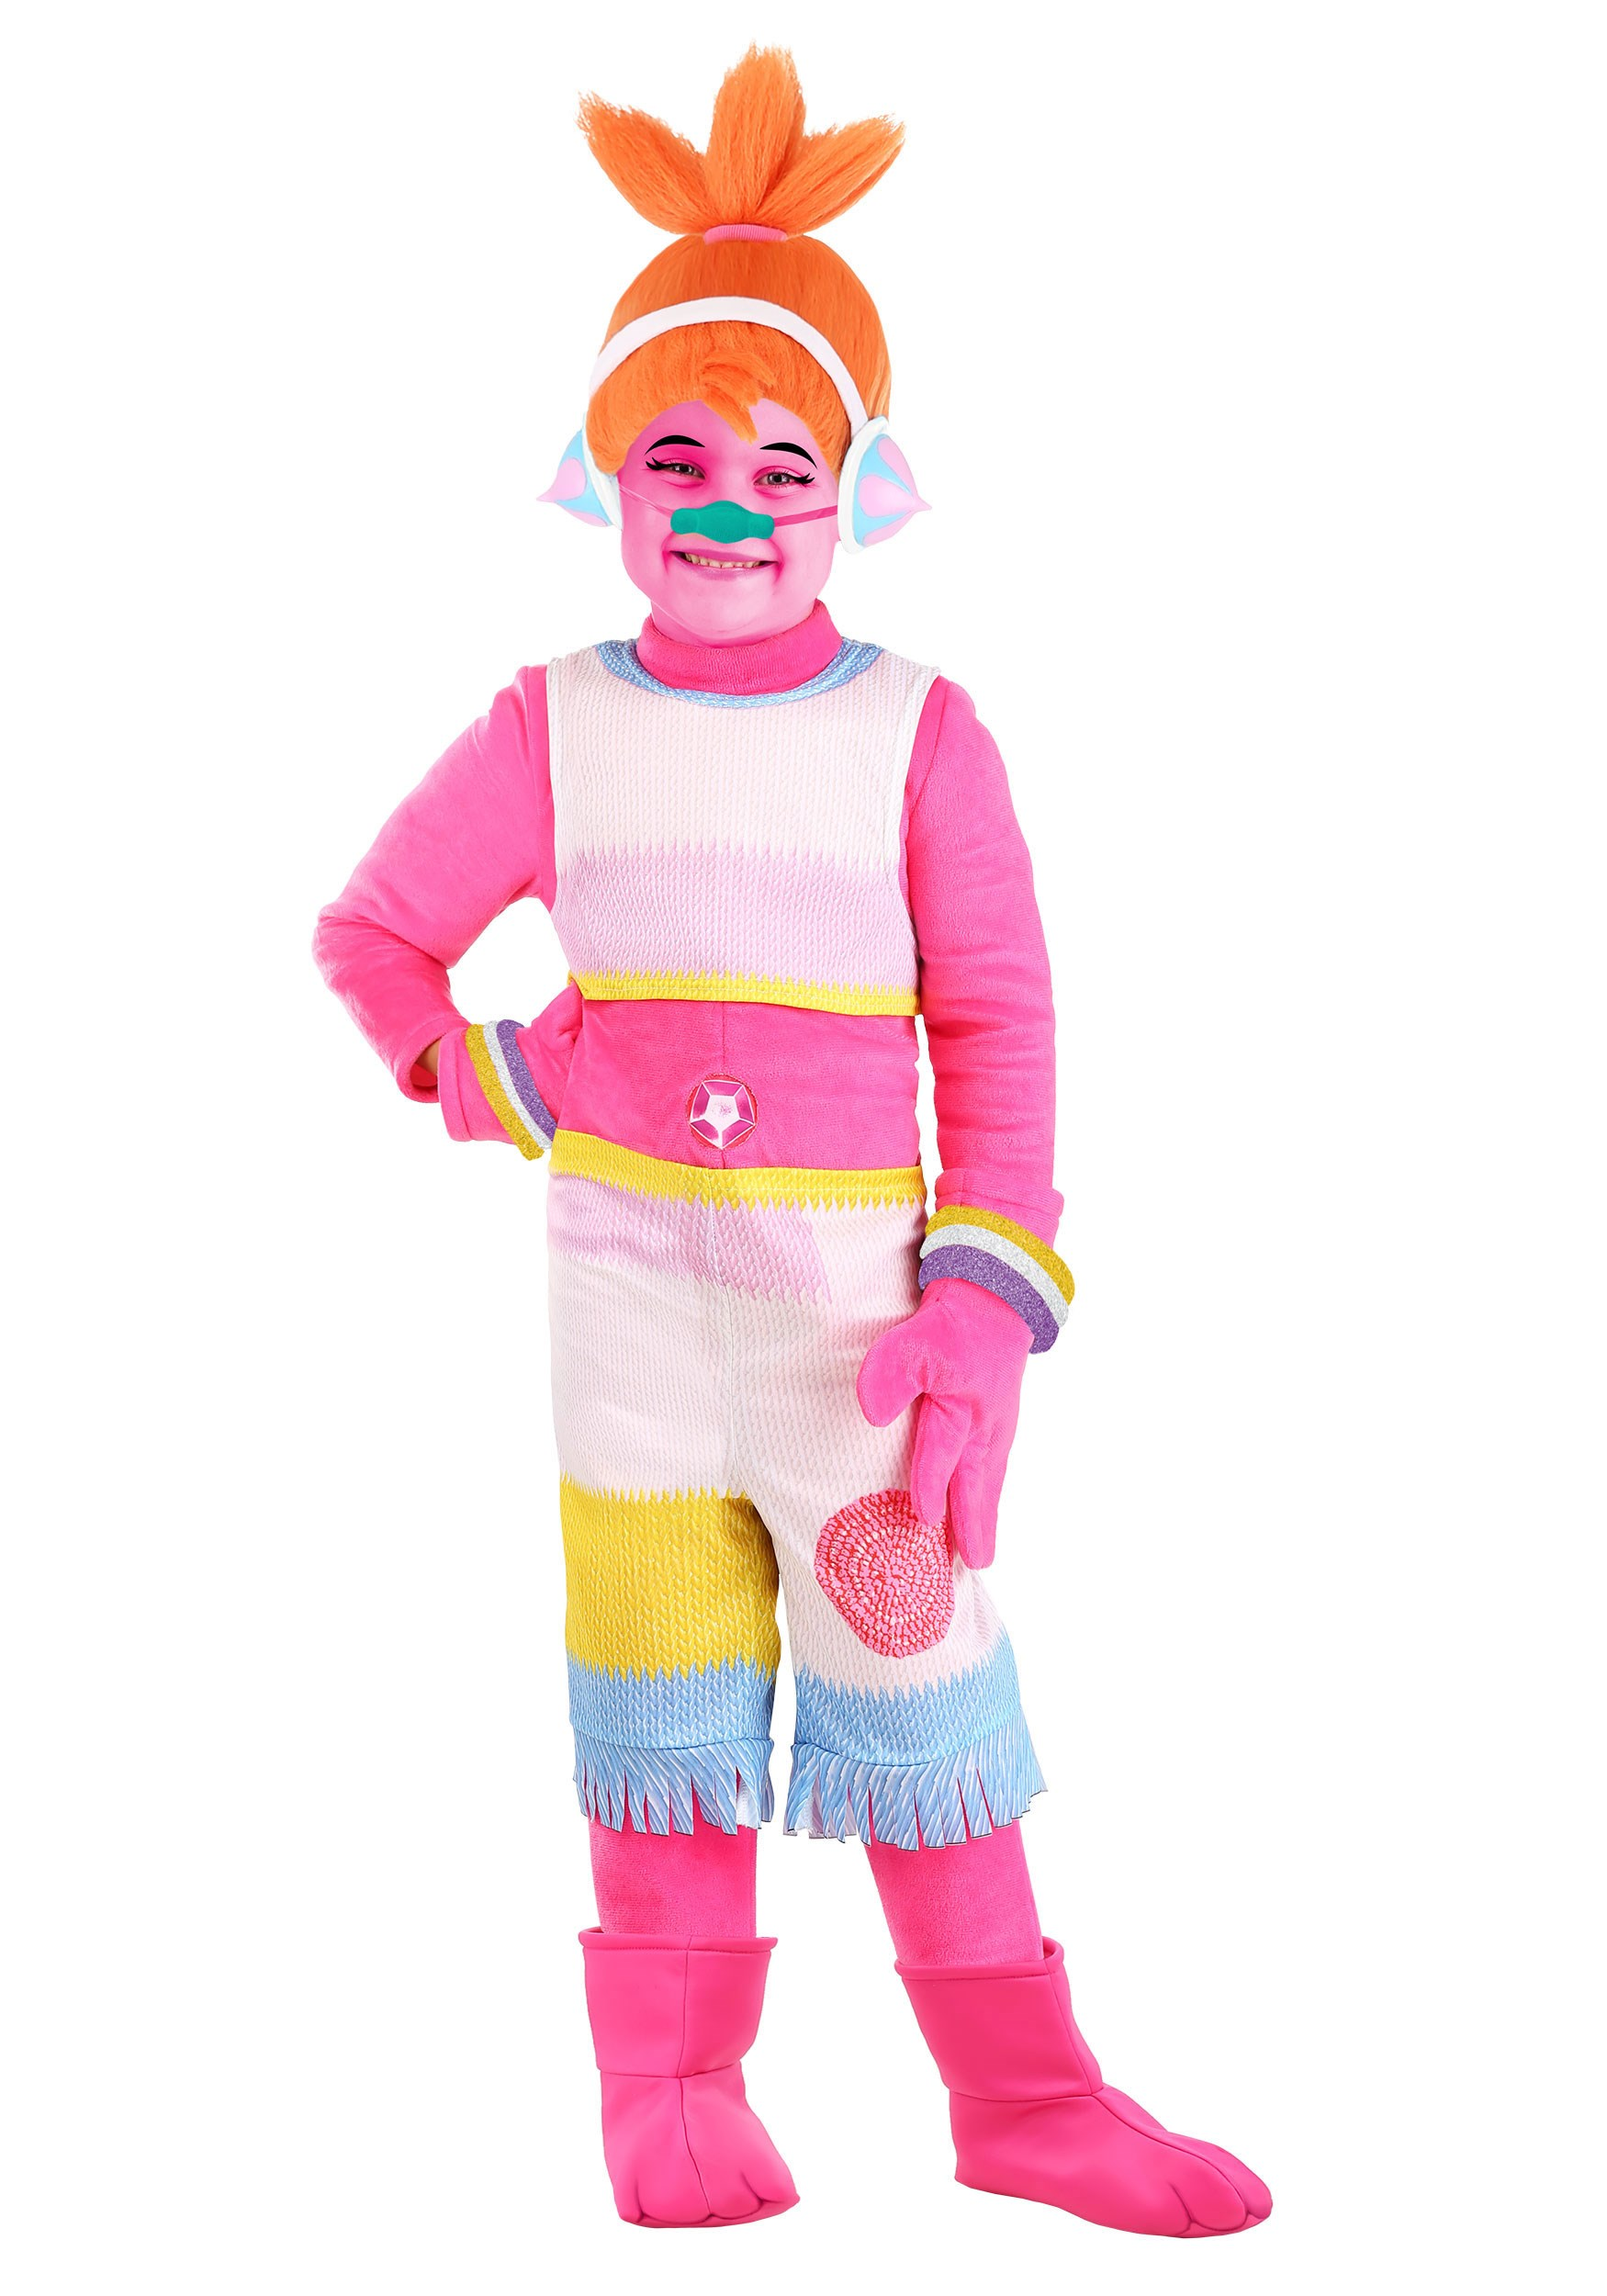 Trolls Toddler's DJ Suki Costume